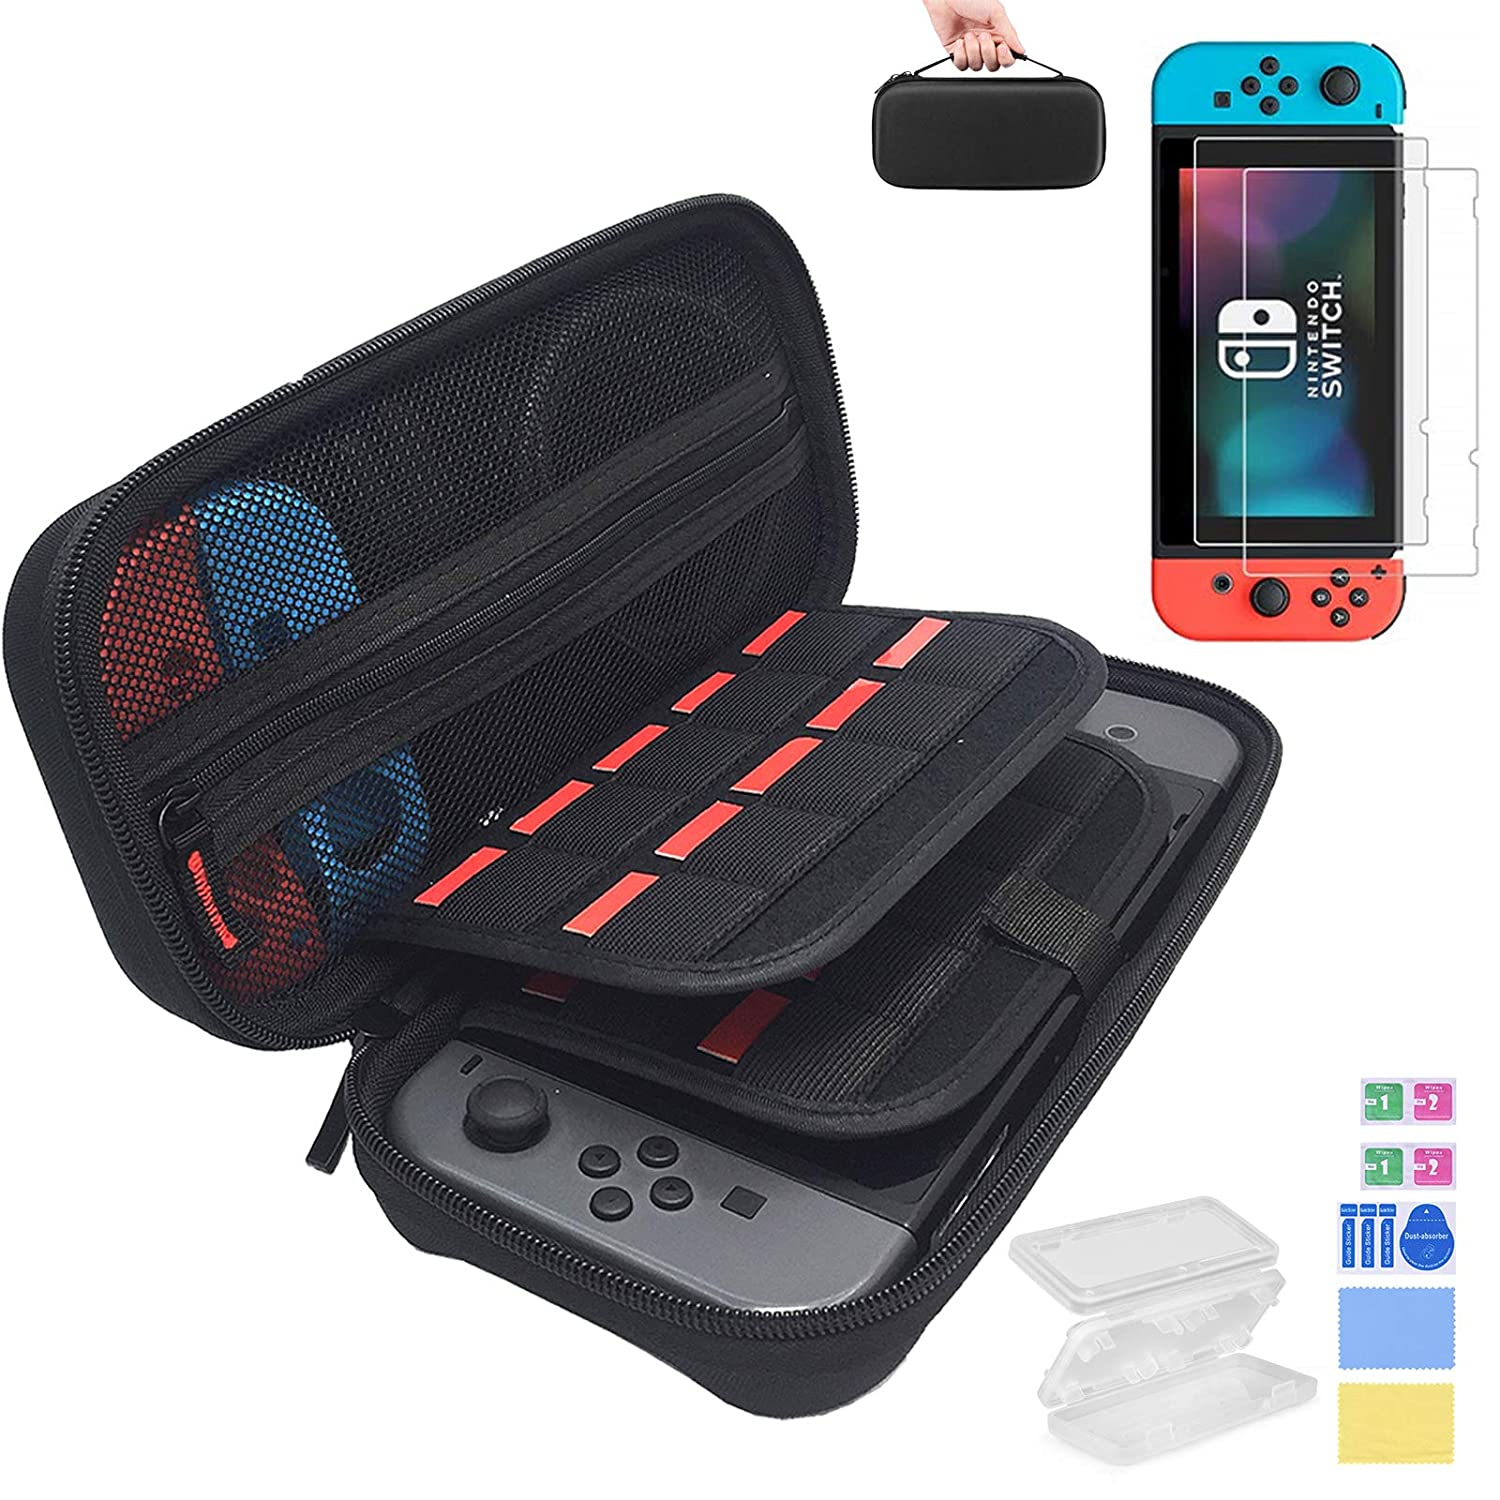 IPNOW Nintendo Switch Case with Screen Protectors, Switch Carrying Case with 20 Game Cartridges,2 pcs Tempered Glass Switch Screen Protectors,and 1 pcs Nintendo Switch Game Holder for 4 Game Cards